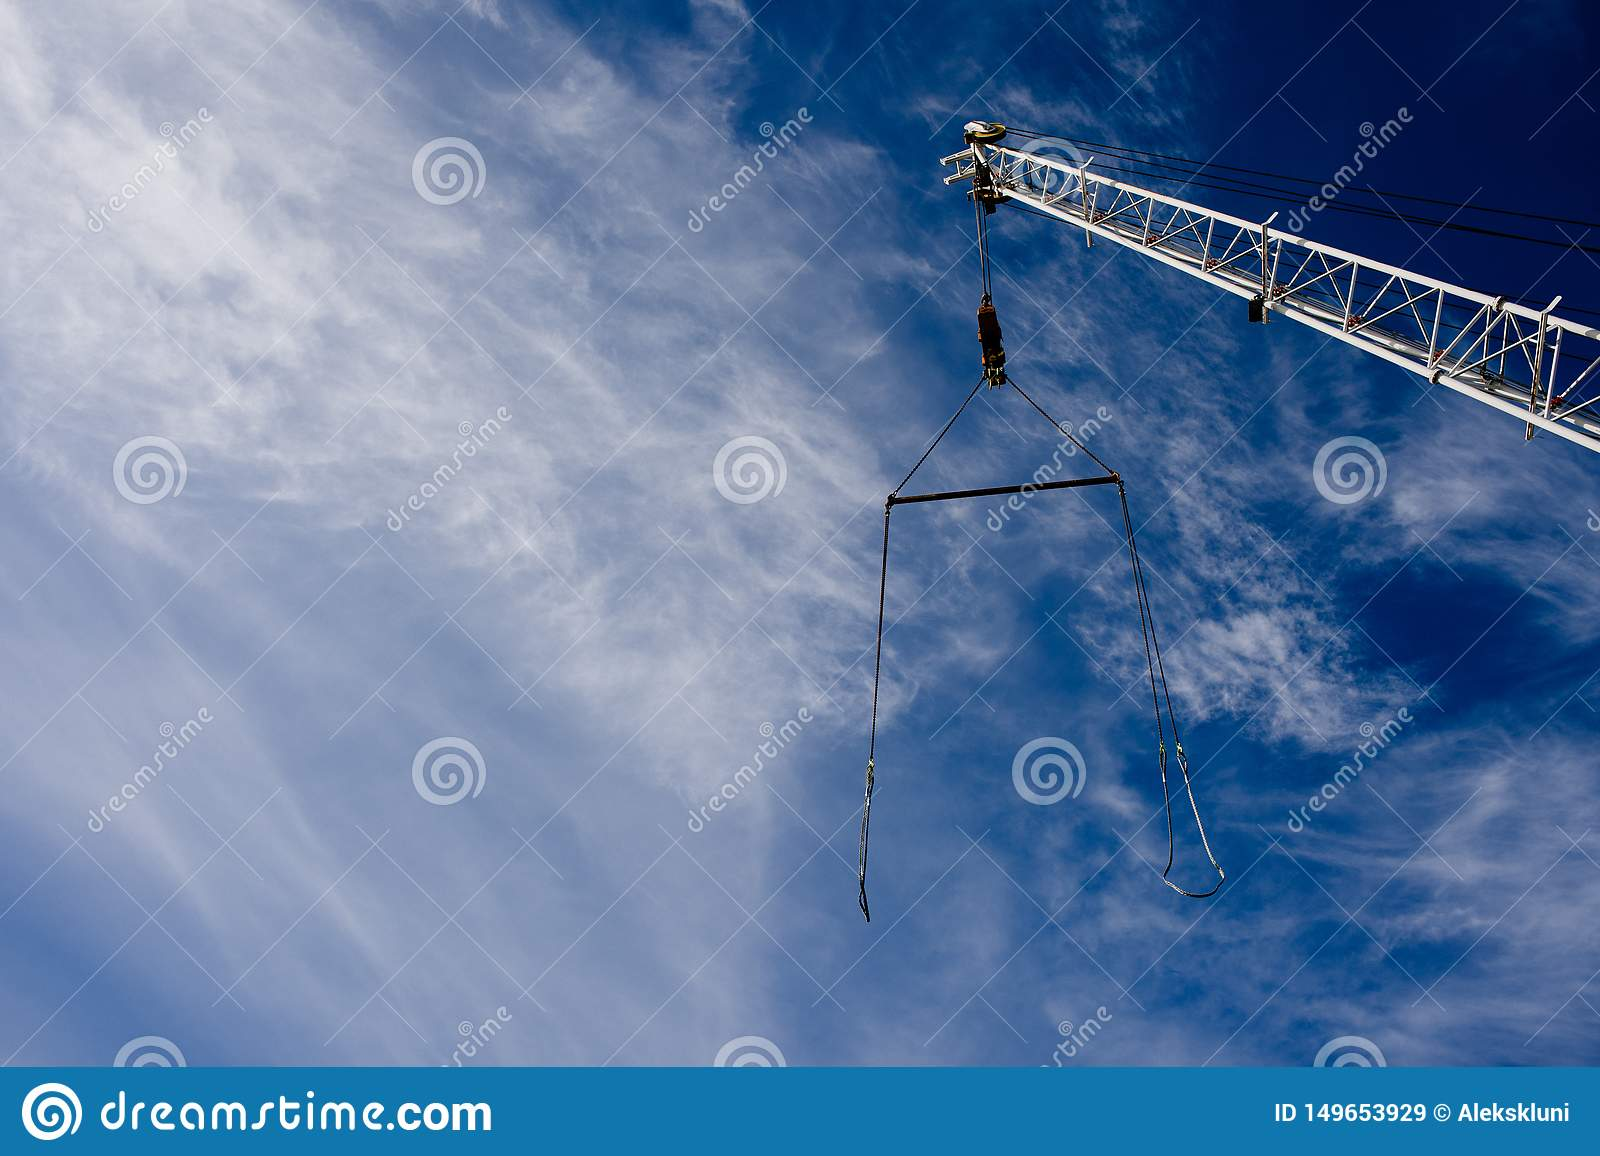 Boom crane with a cable against the blue sky. Background. Copy space